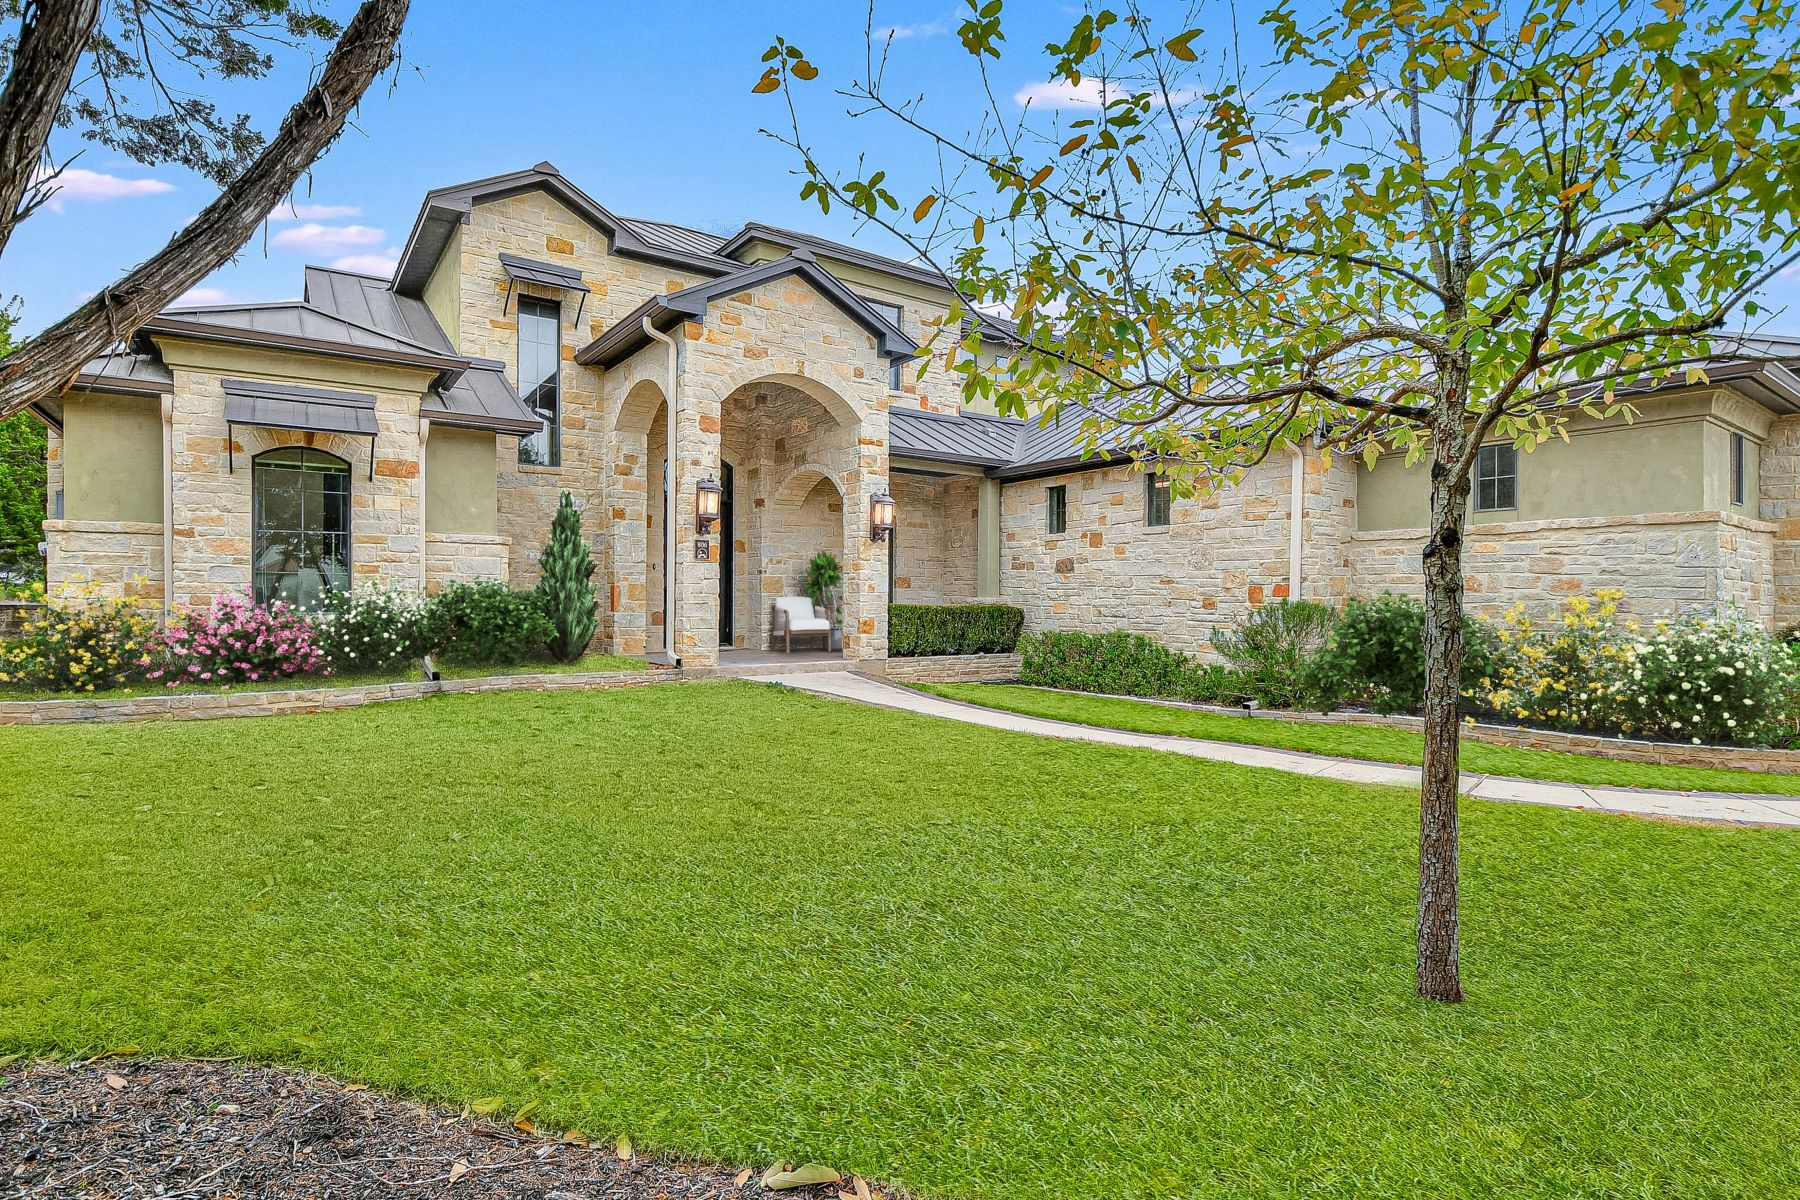 Single Family Homes for Sale at Prestigious Newcombe Tennis Ranch Home 806 Uluru Avenue New Braunfels, Texas 78132 United States